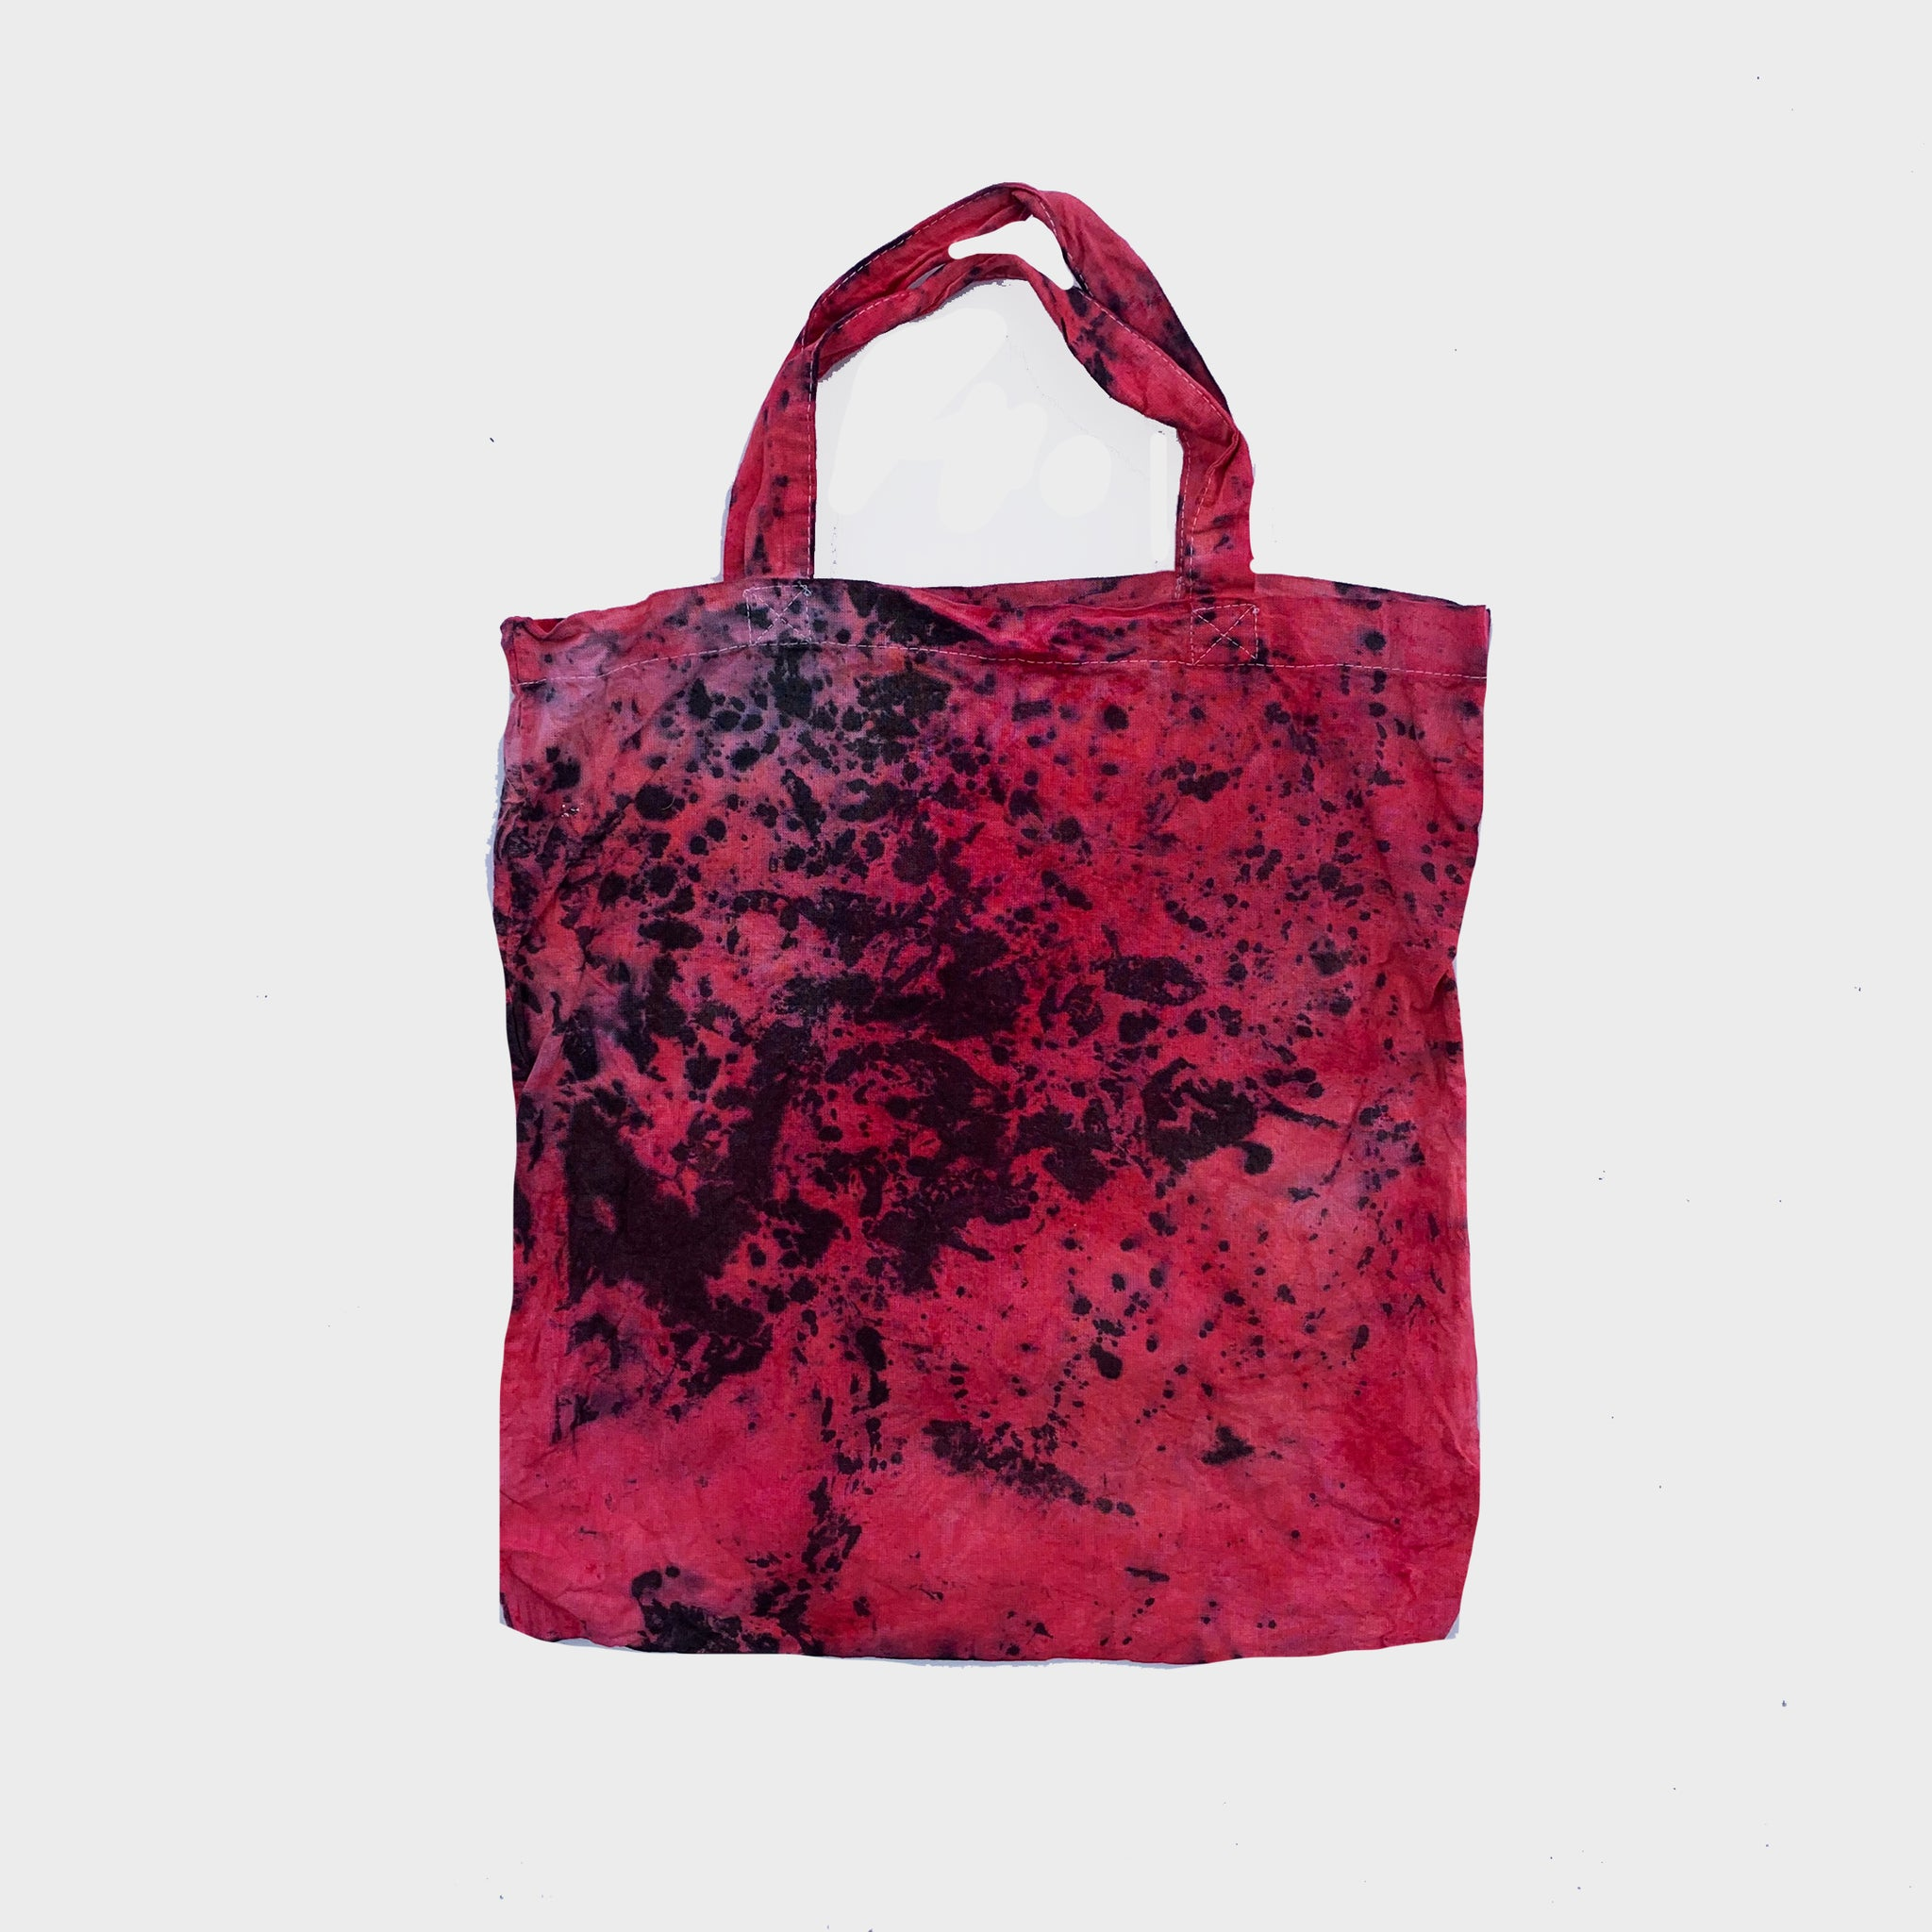 Red/Black Tie Dye Shopper Tote Bag